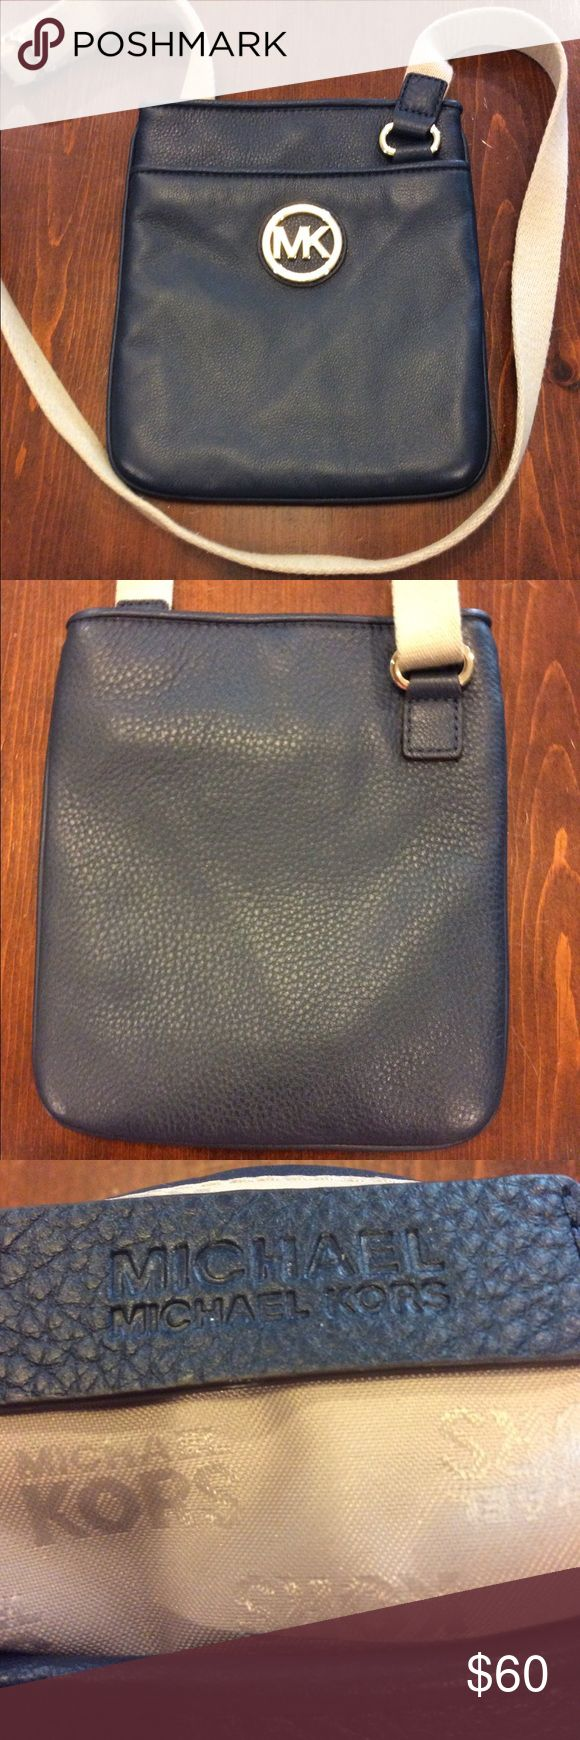 """Michael Kors Navy Jet Set crossbody handbag Michael Kors navy jet set crossbody handbag in excellent condition. Navy pebble leather with gold MK Circle medallion on front of bag. Height 9"""", width 8"""". Adjustable khaki canvas strap. Front outside pocket; two interior pockets. MICHAEL Michael Kors Bags Crossbody Bags"""